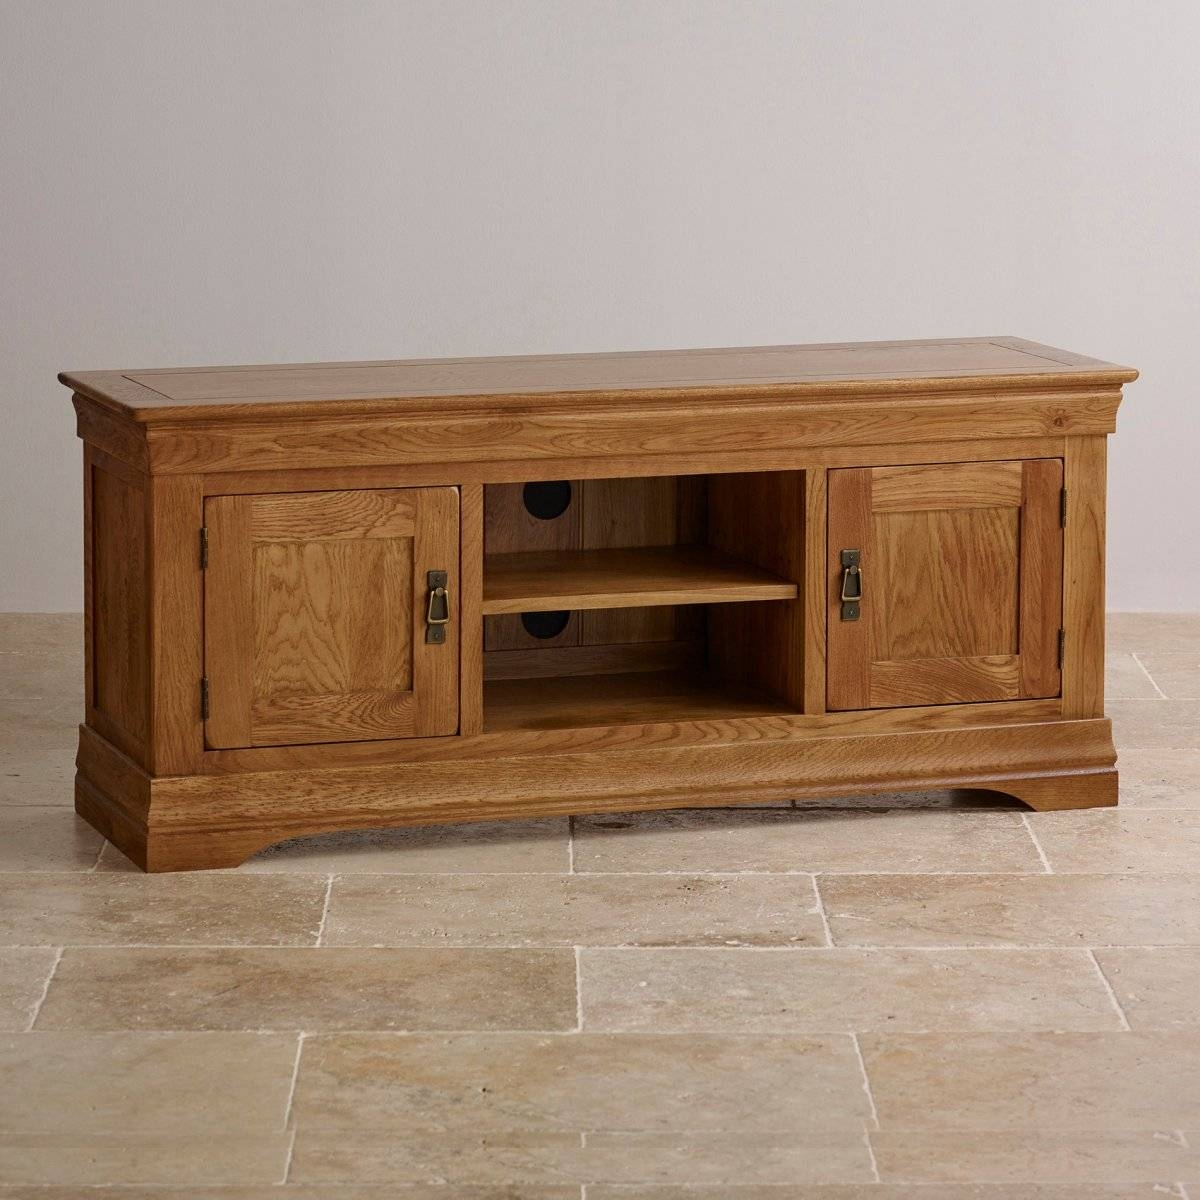 French Farmhouse Tv Cabinet In Solid Oak | Oak Furniture Land in Large Tv Cabinets (Image 3 of 15)